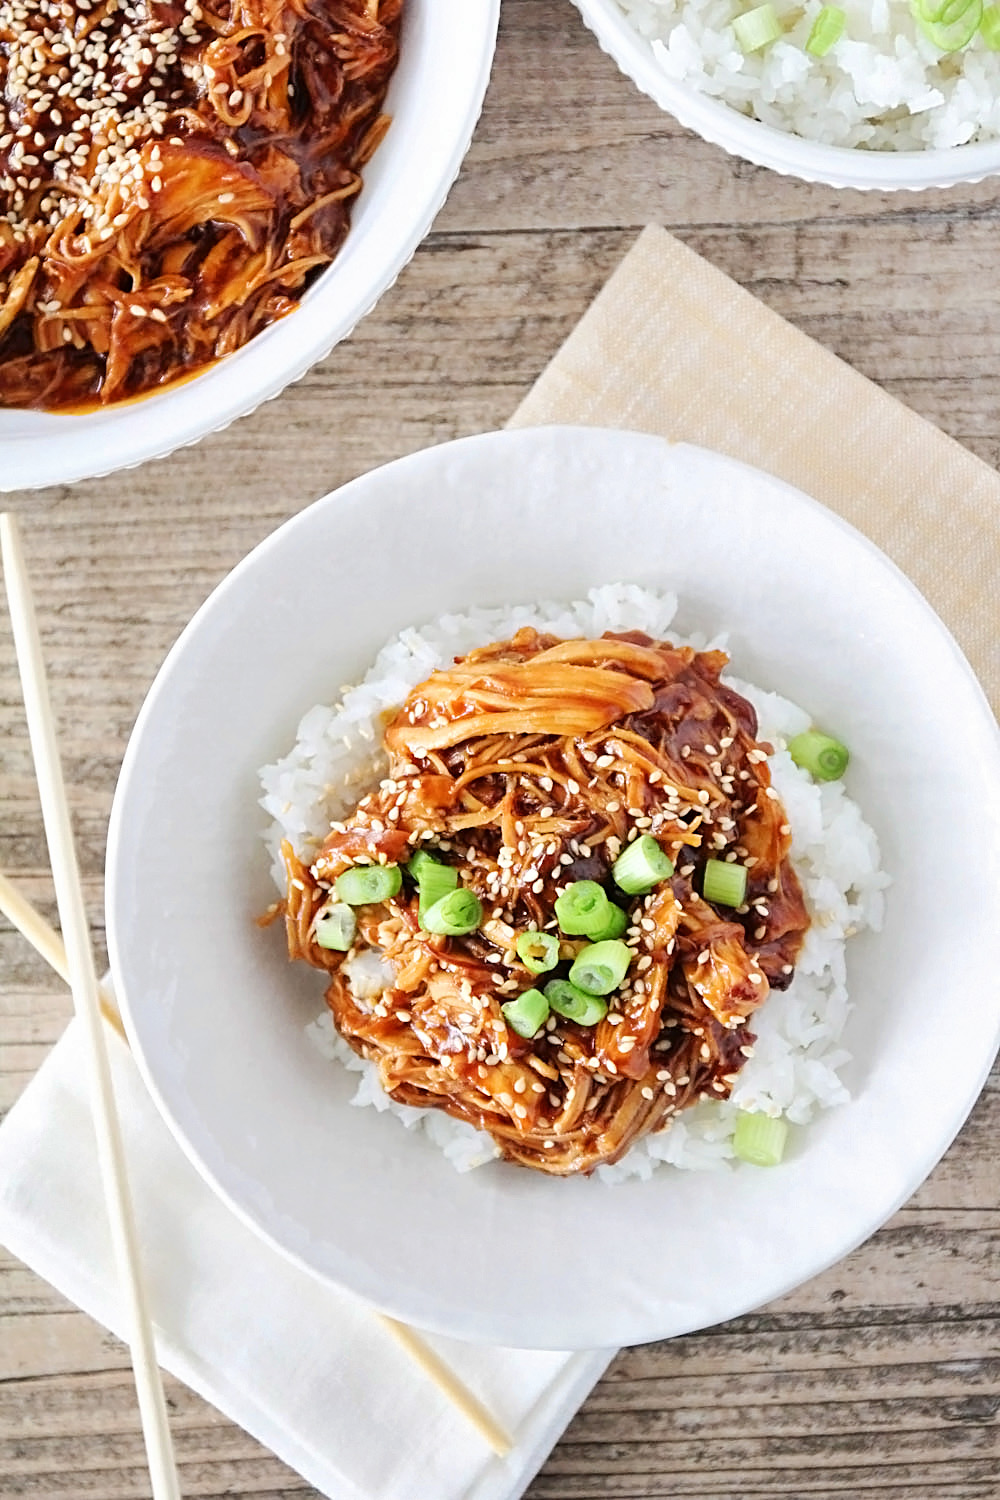 This simple and flavorful Instant Pot honey sesame chicken is ready in under an hour, and so delicious!